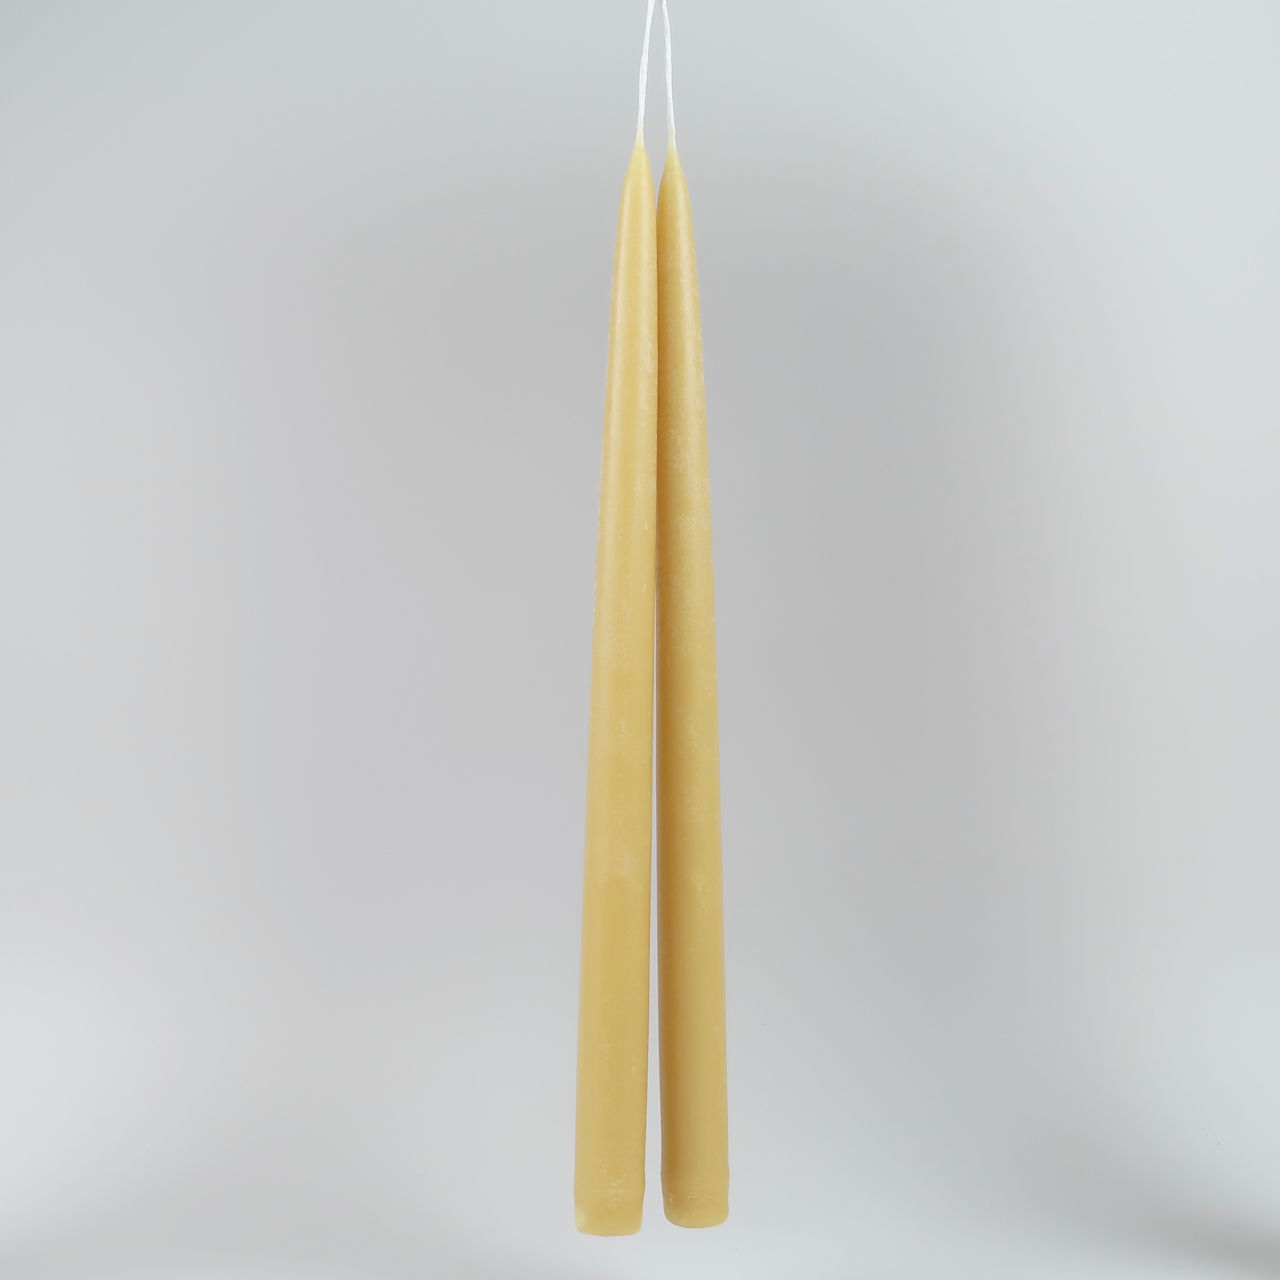 Pair of Tall Beeswax Dinner Candles